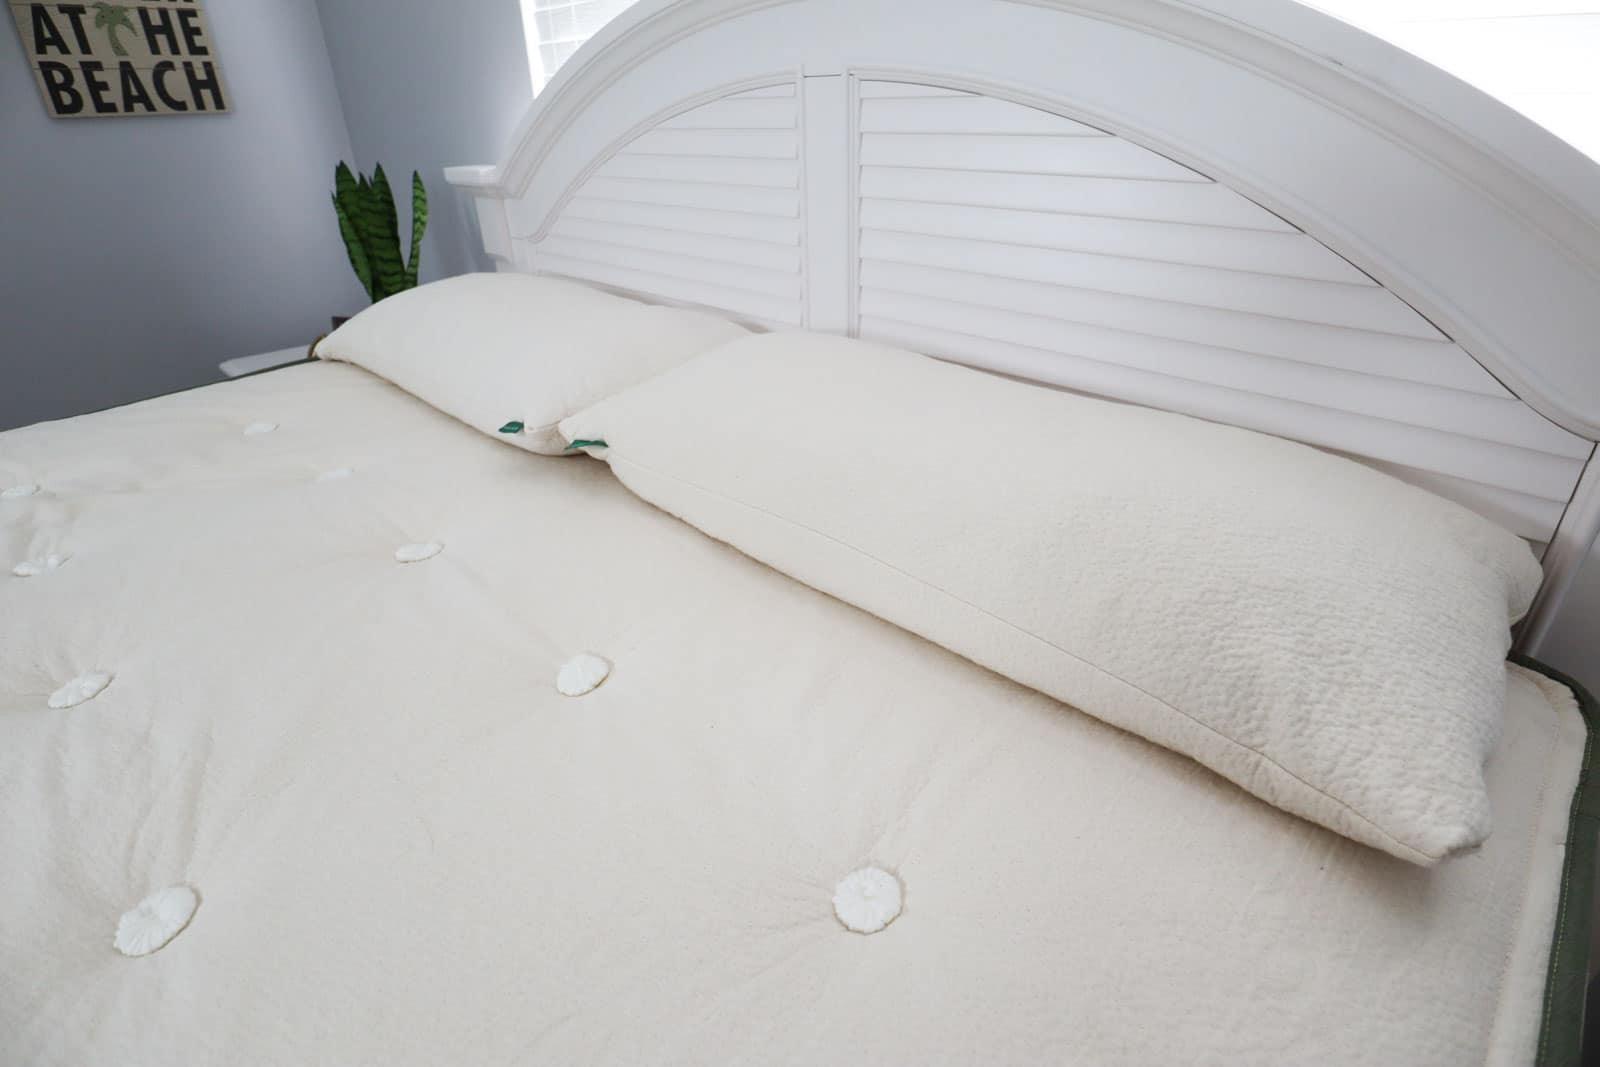 A bare mattress with two king pillows sitting top of it next to a white headboard.